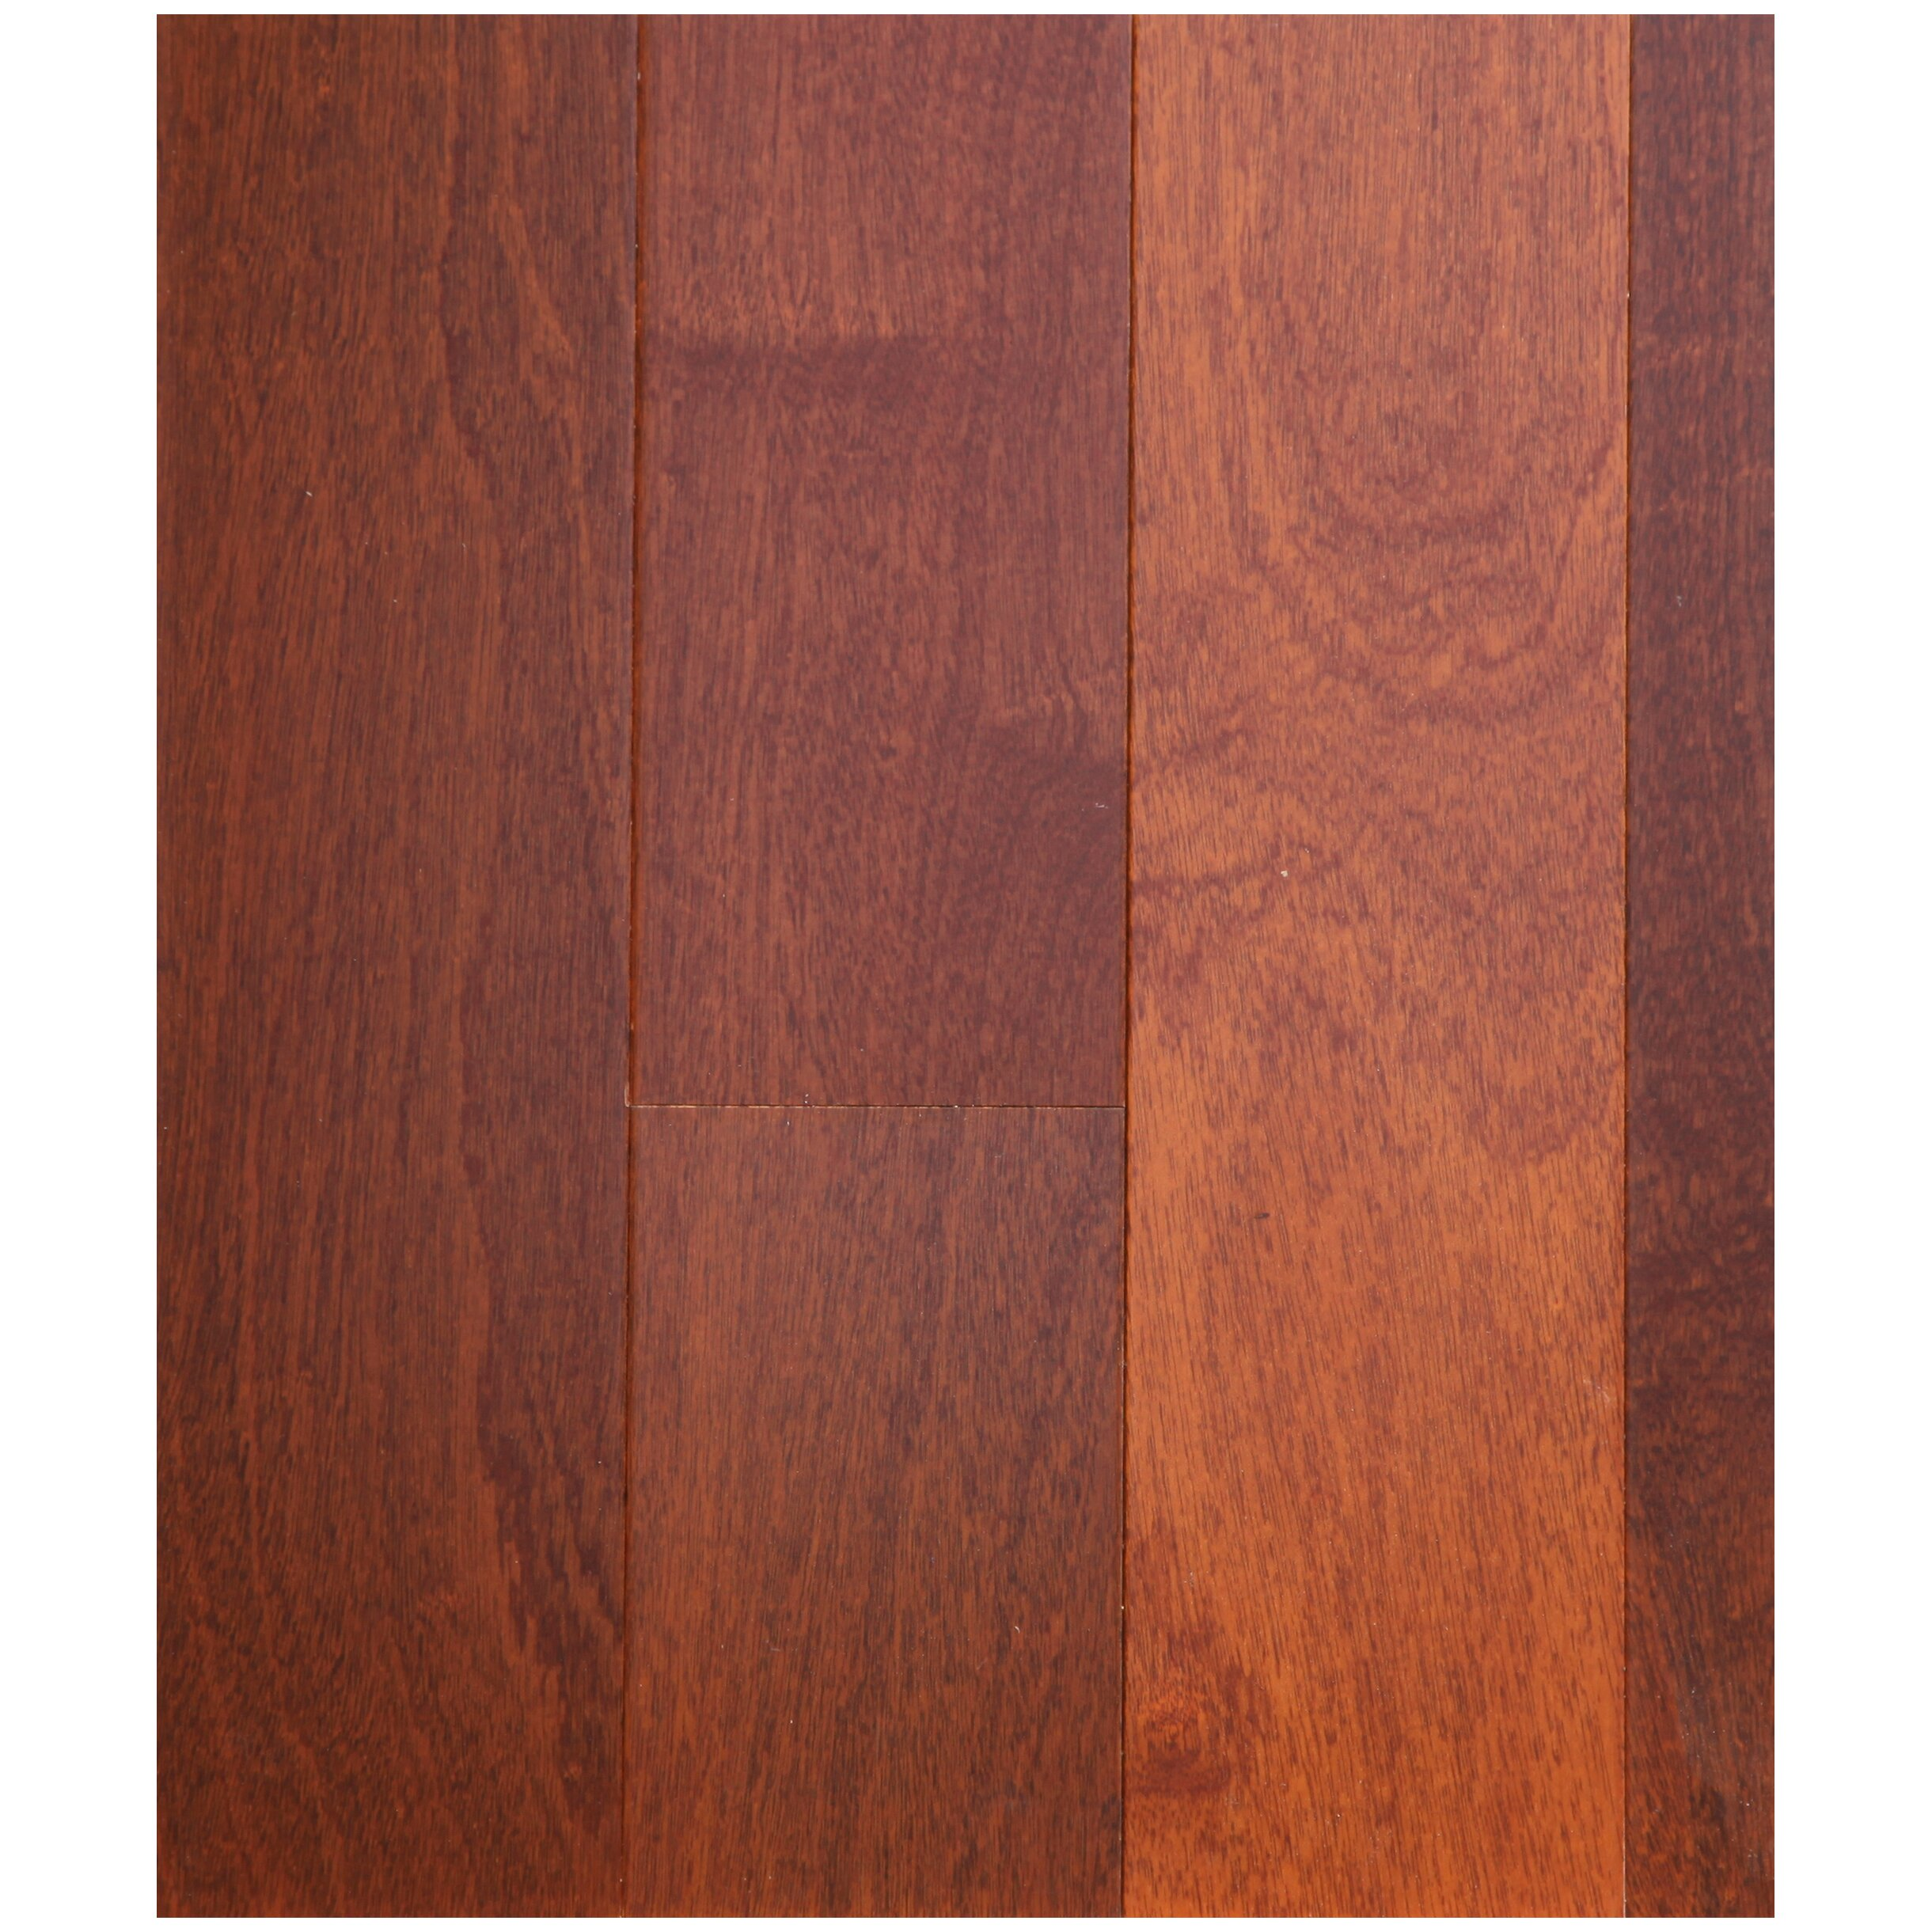 Easoon usa 3 1 2 engineered african mahogany hardwood for Mahogany flooring